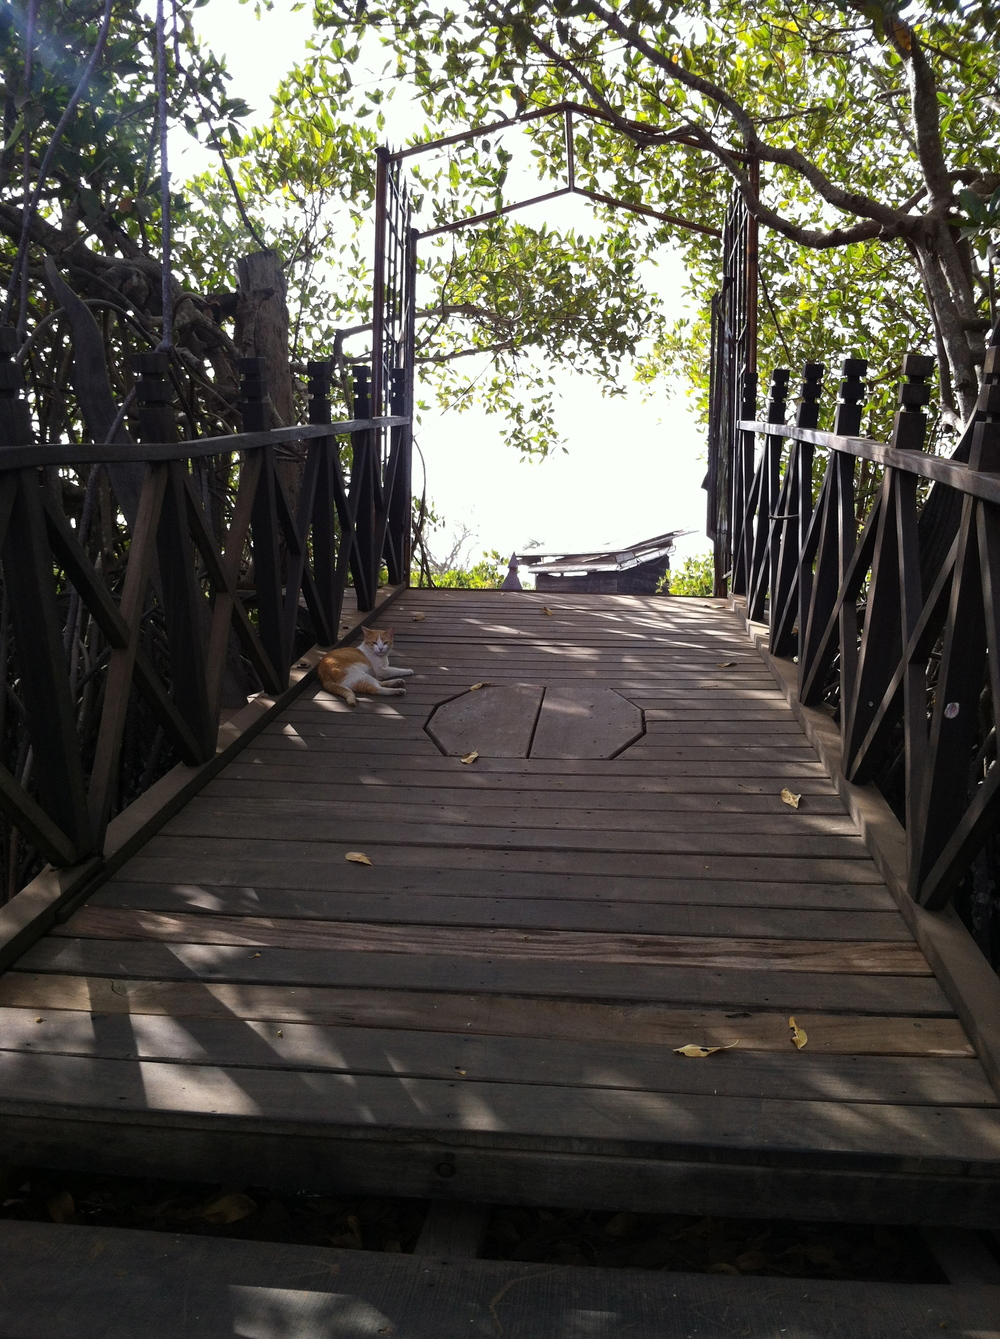 The jetty leading to land from our floating lodge, complete with adopted cat